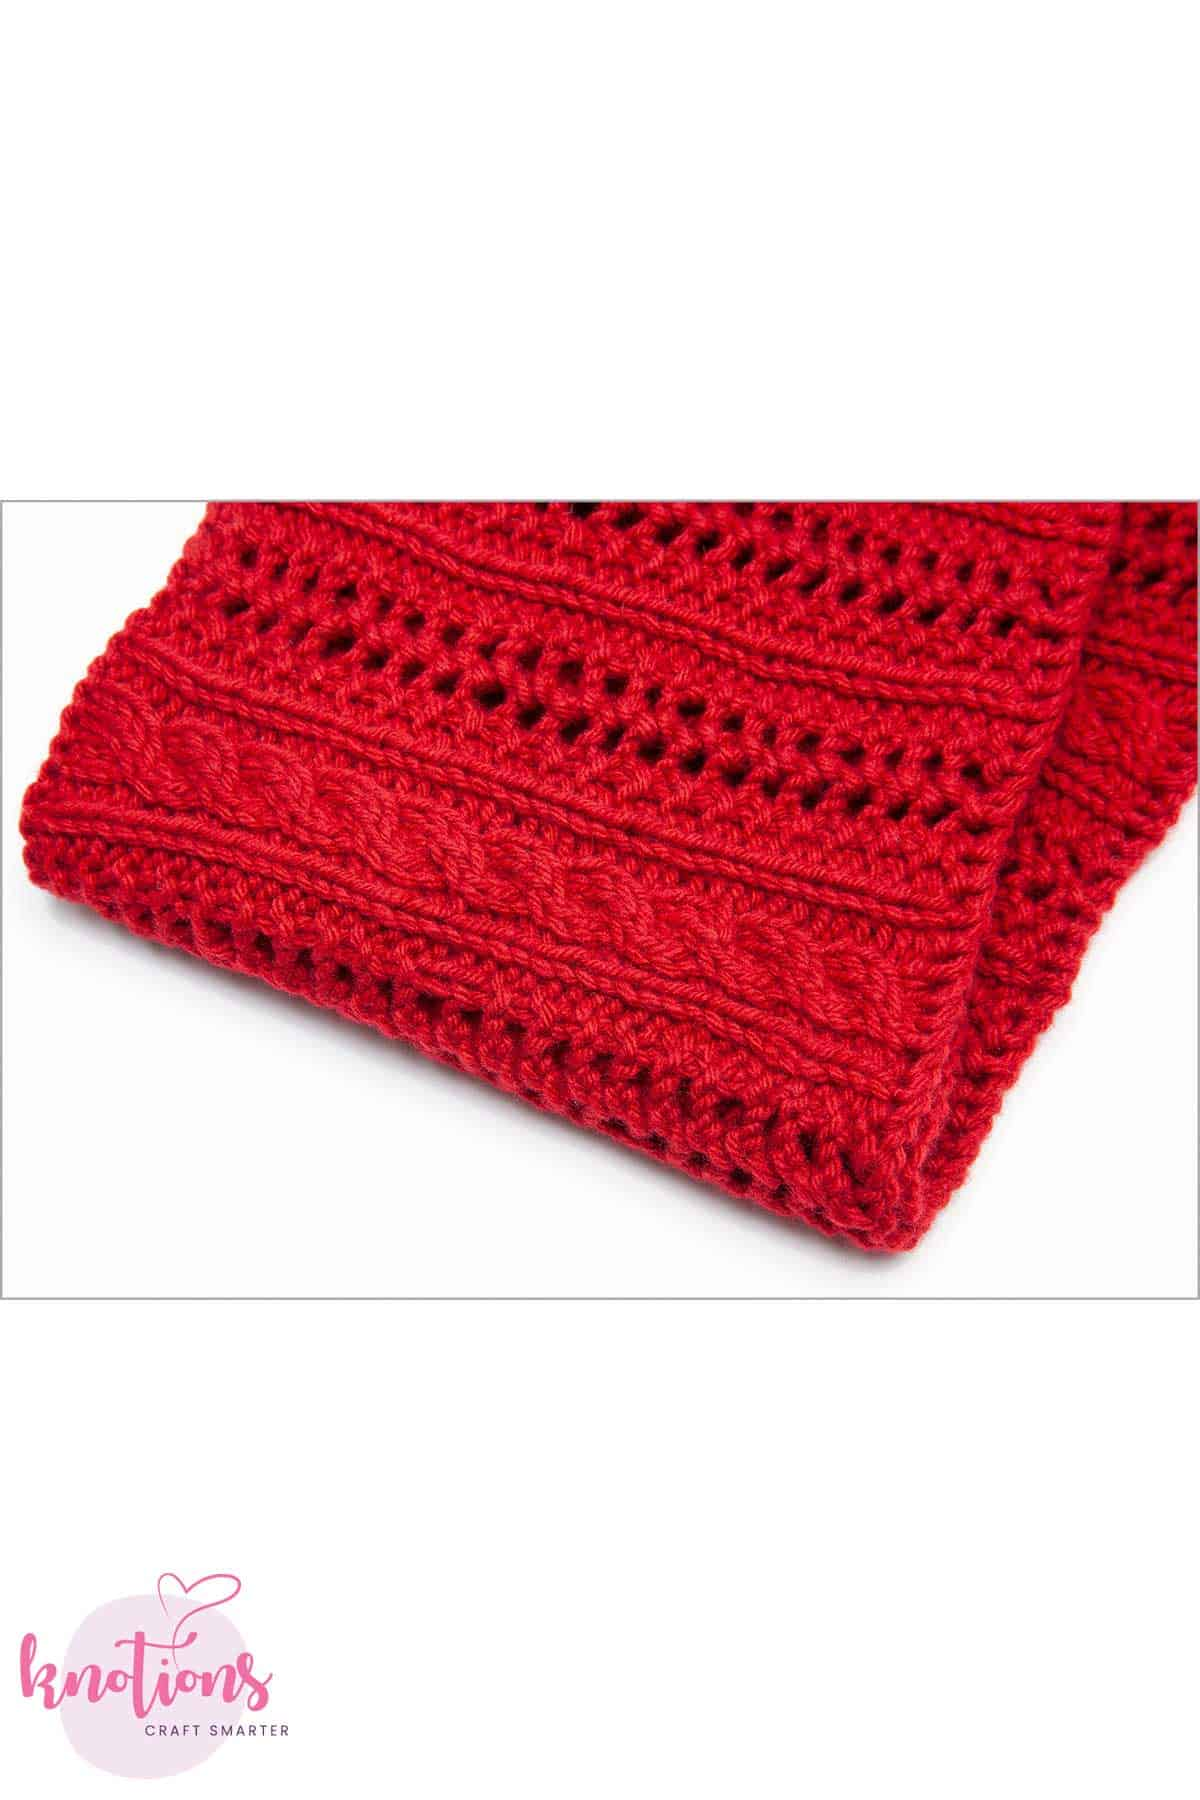 morning-catch-cowl-5